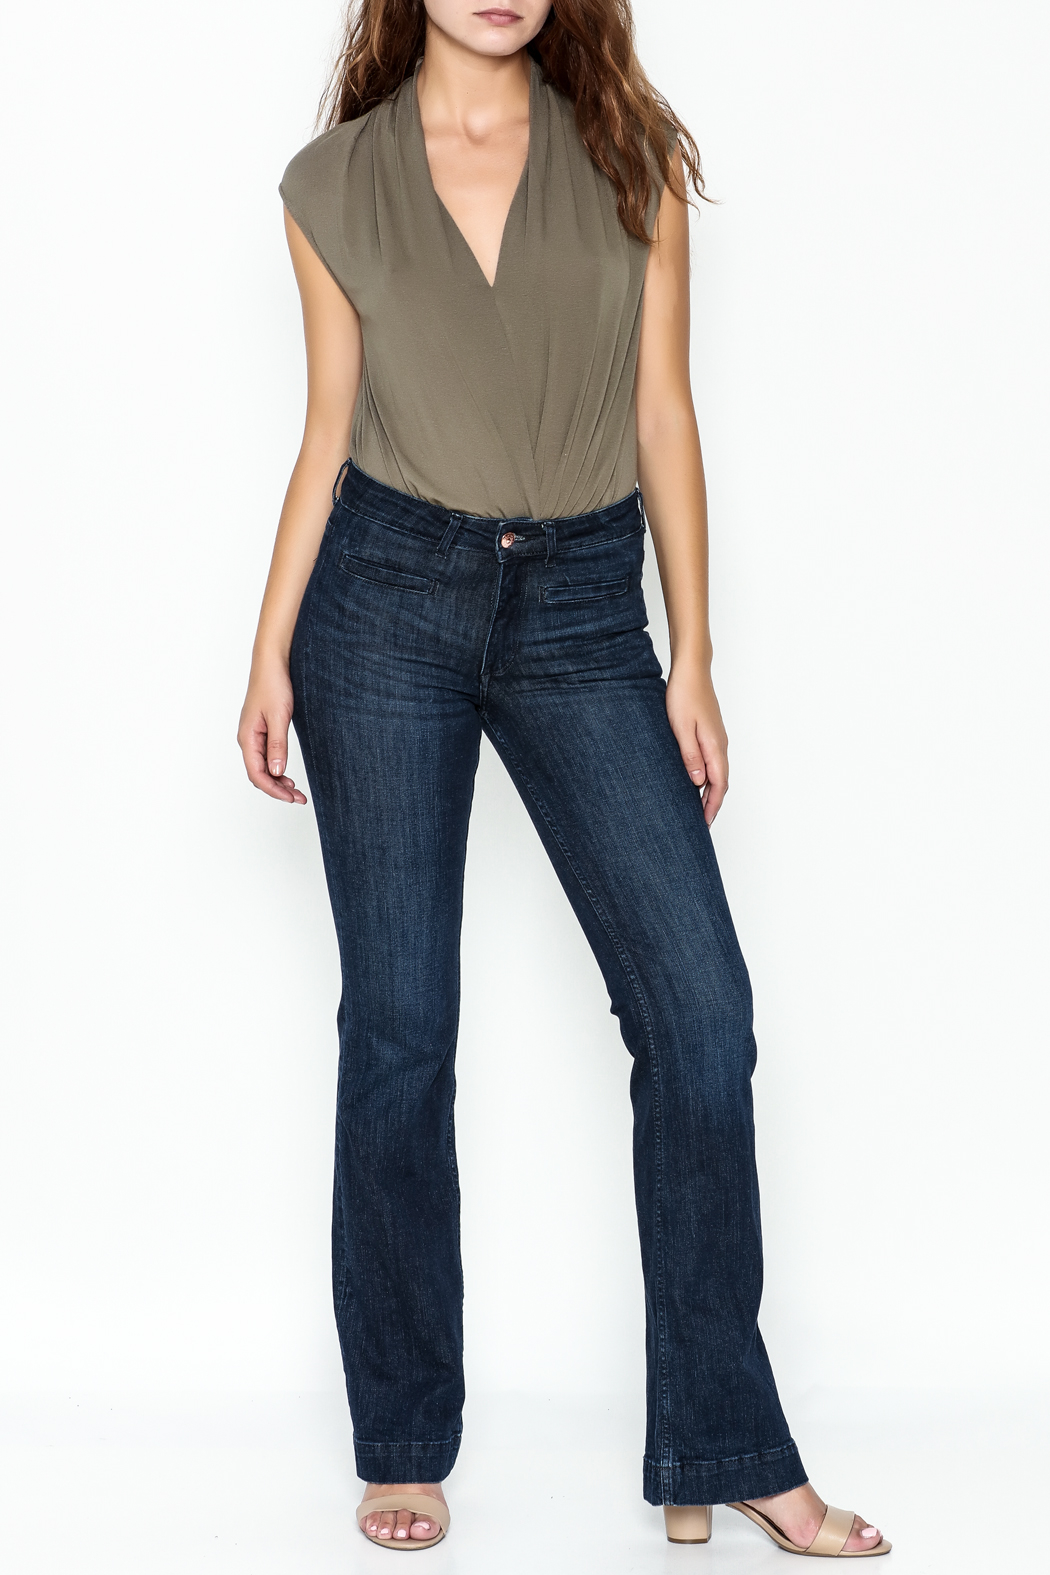 Mustard Seed Date Night Bodysuit - Side Cropped Image